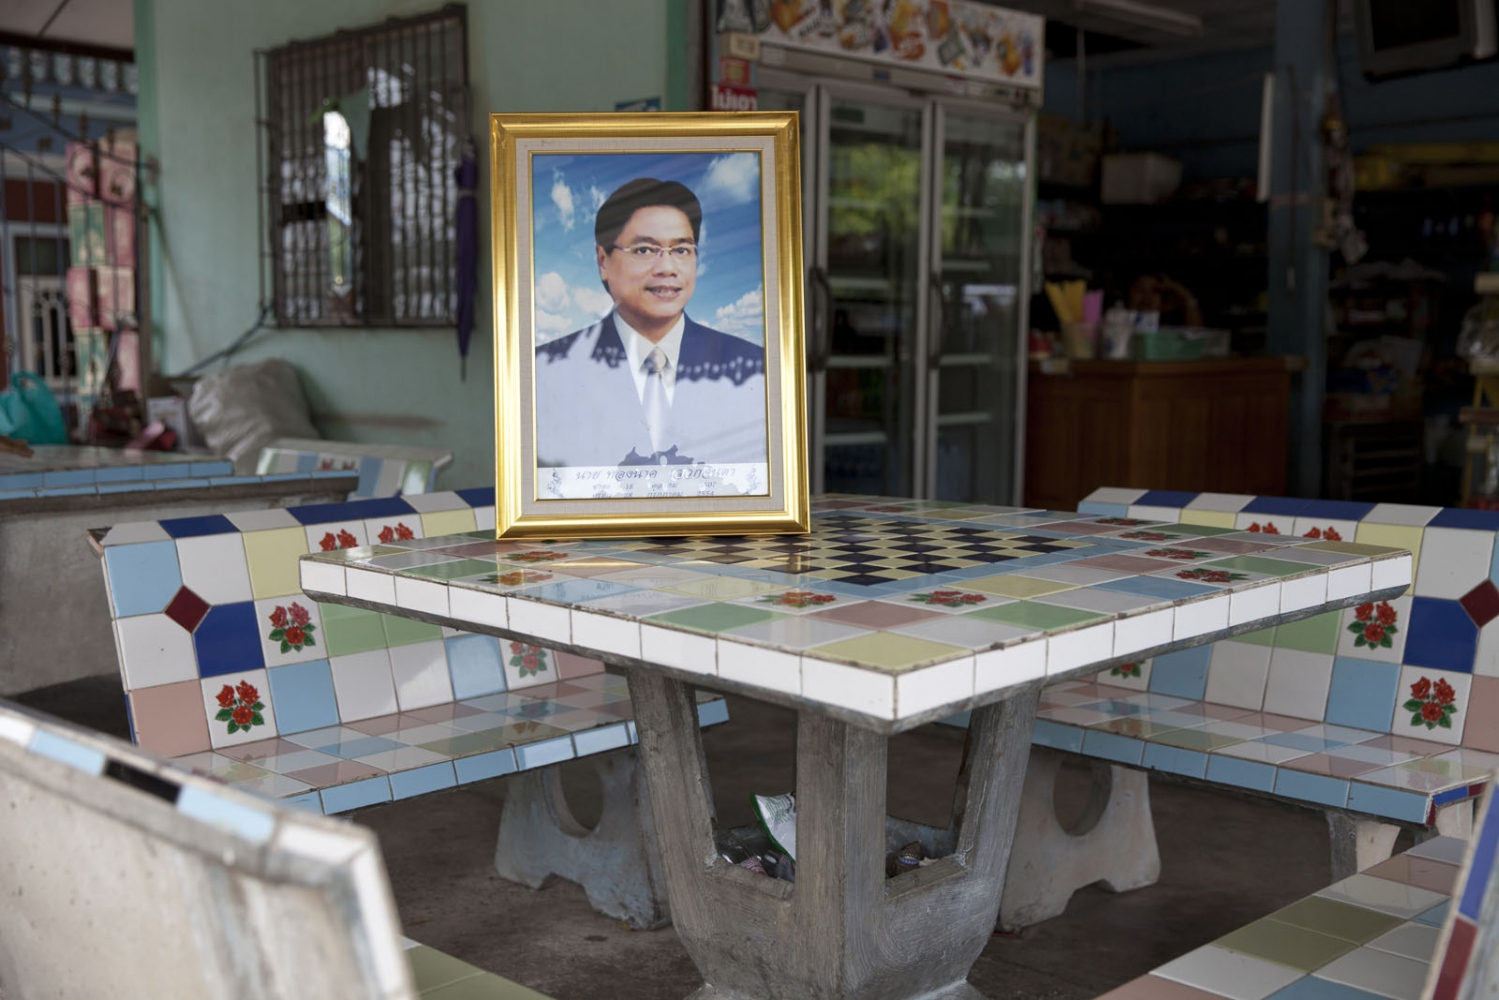 Thongnak SAWEKCHINDA Mr Thongnak Sawekchinda, 47, was shot 9 times whilst sitting outside his home on 28 July 2011 in Samut Sakhon town. Thongnak had led villagers in Muang, Ban Phaeo, and Krathum Baen districts in high-profile protests against air pollution from dust and fumes which come from coal depots and separation factories.